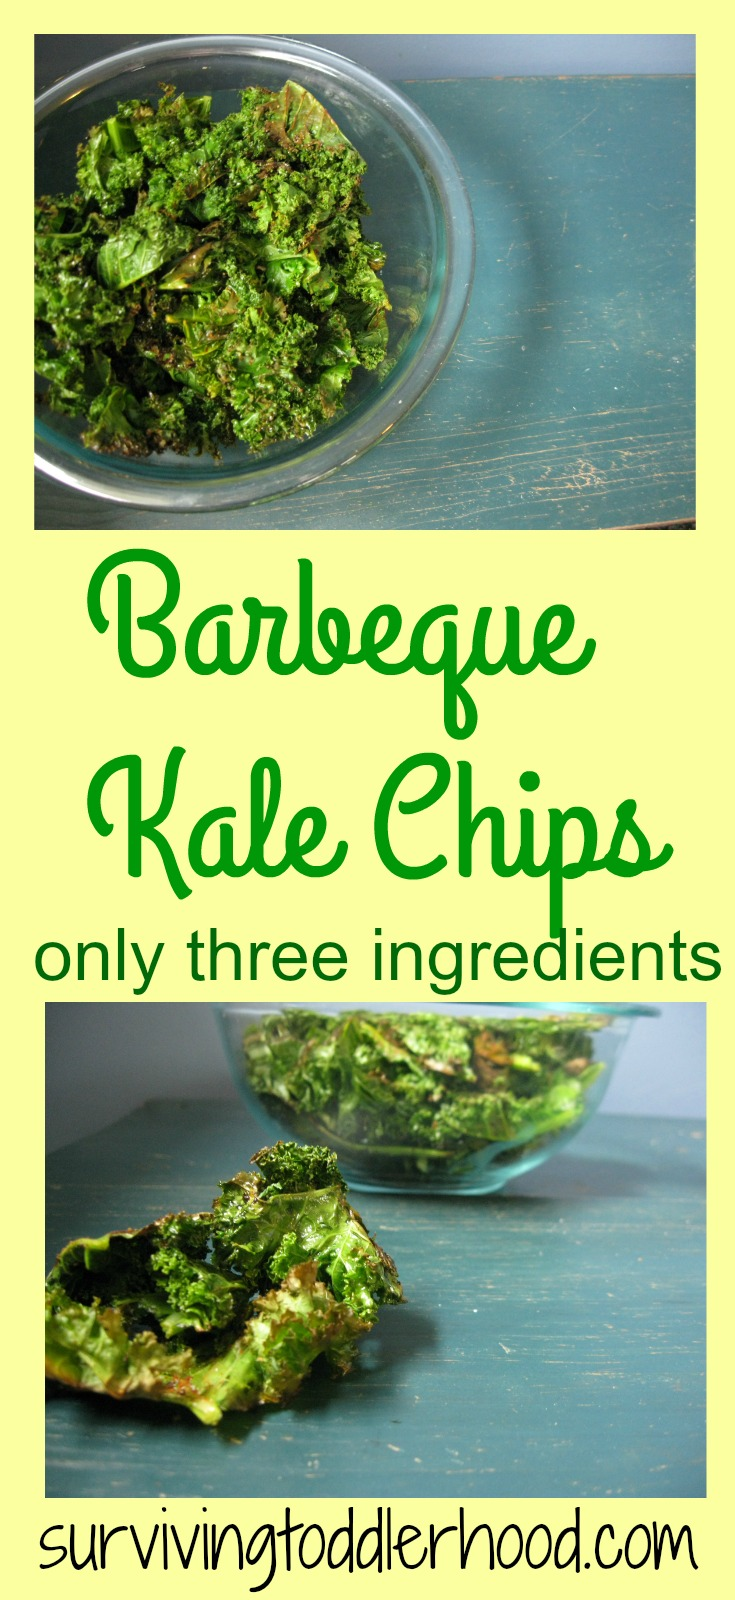 Barbeque Kale Chips. You only need three ingredients to make this new version of kale chips. It is the perfect way to use up your abundance of kale.